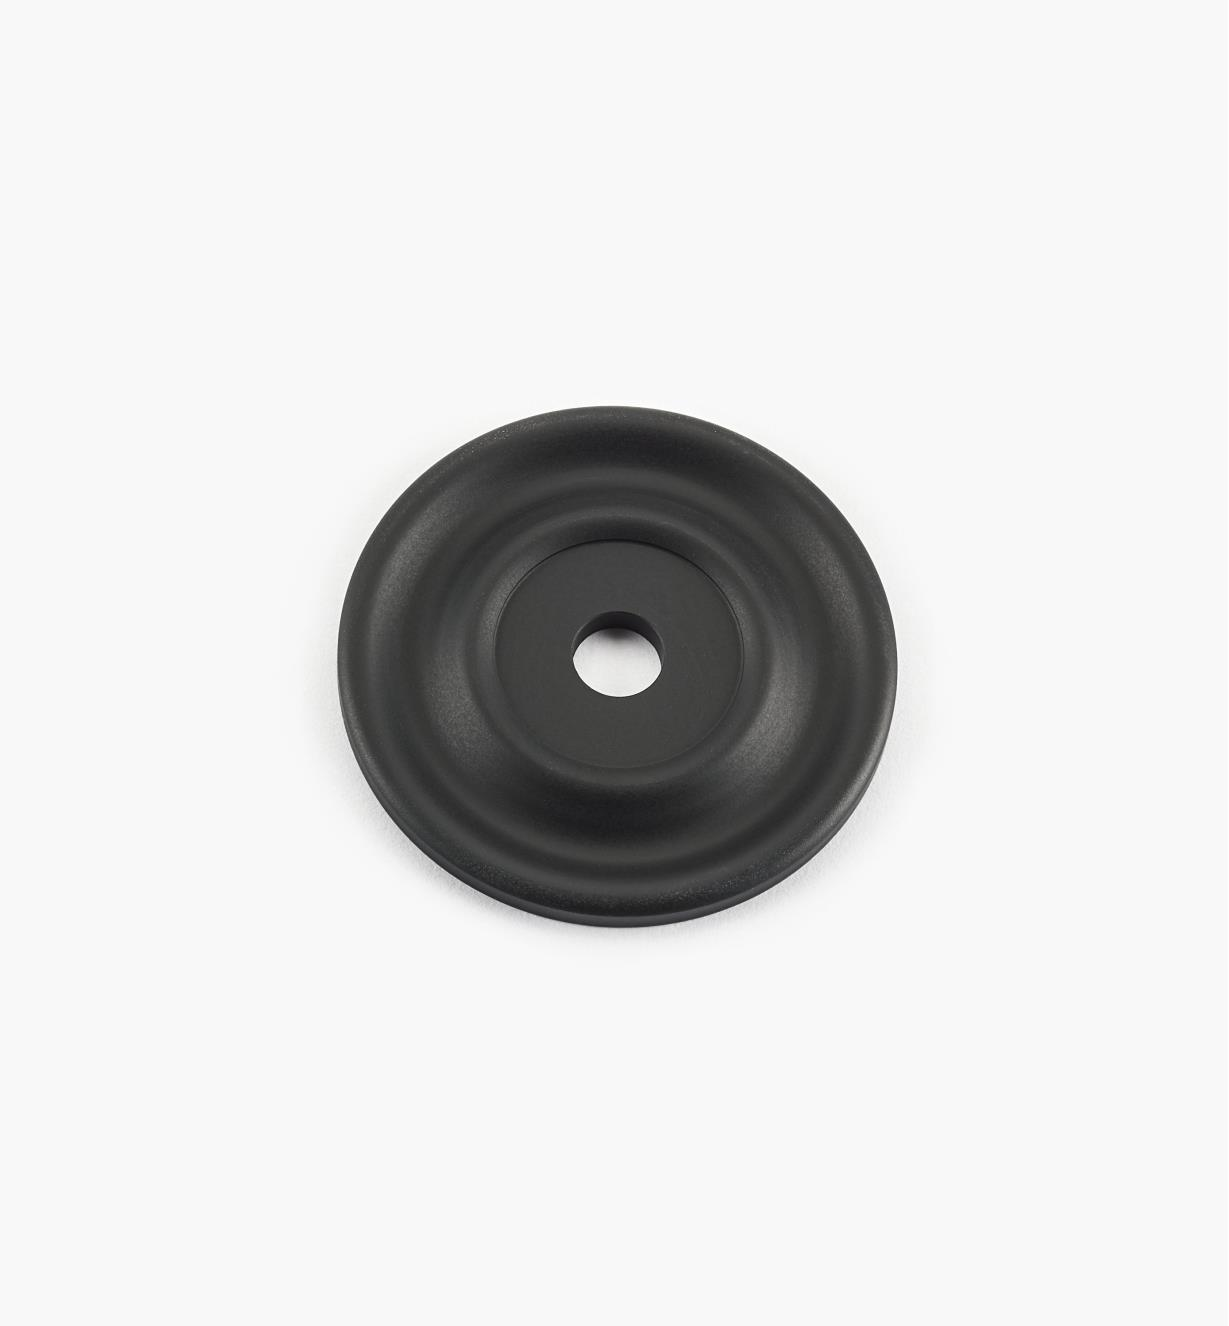 "02W3251 - Oil-Rubbed Bronze Suite - 1 5/8"" Knob Escutcheons"